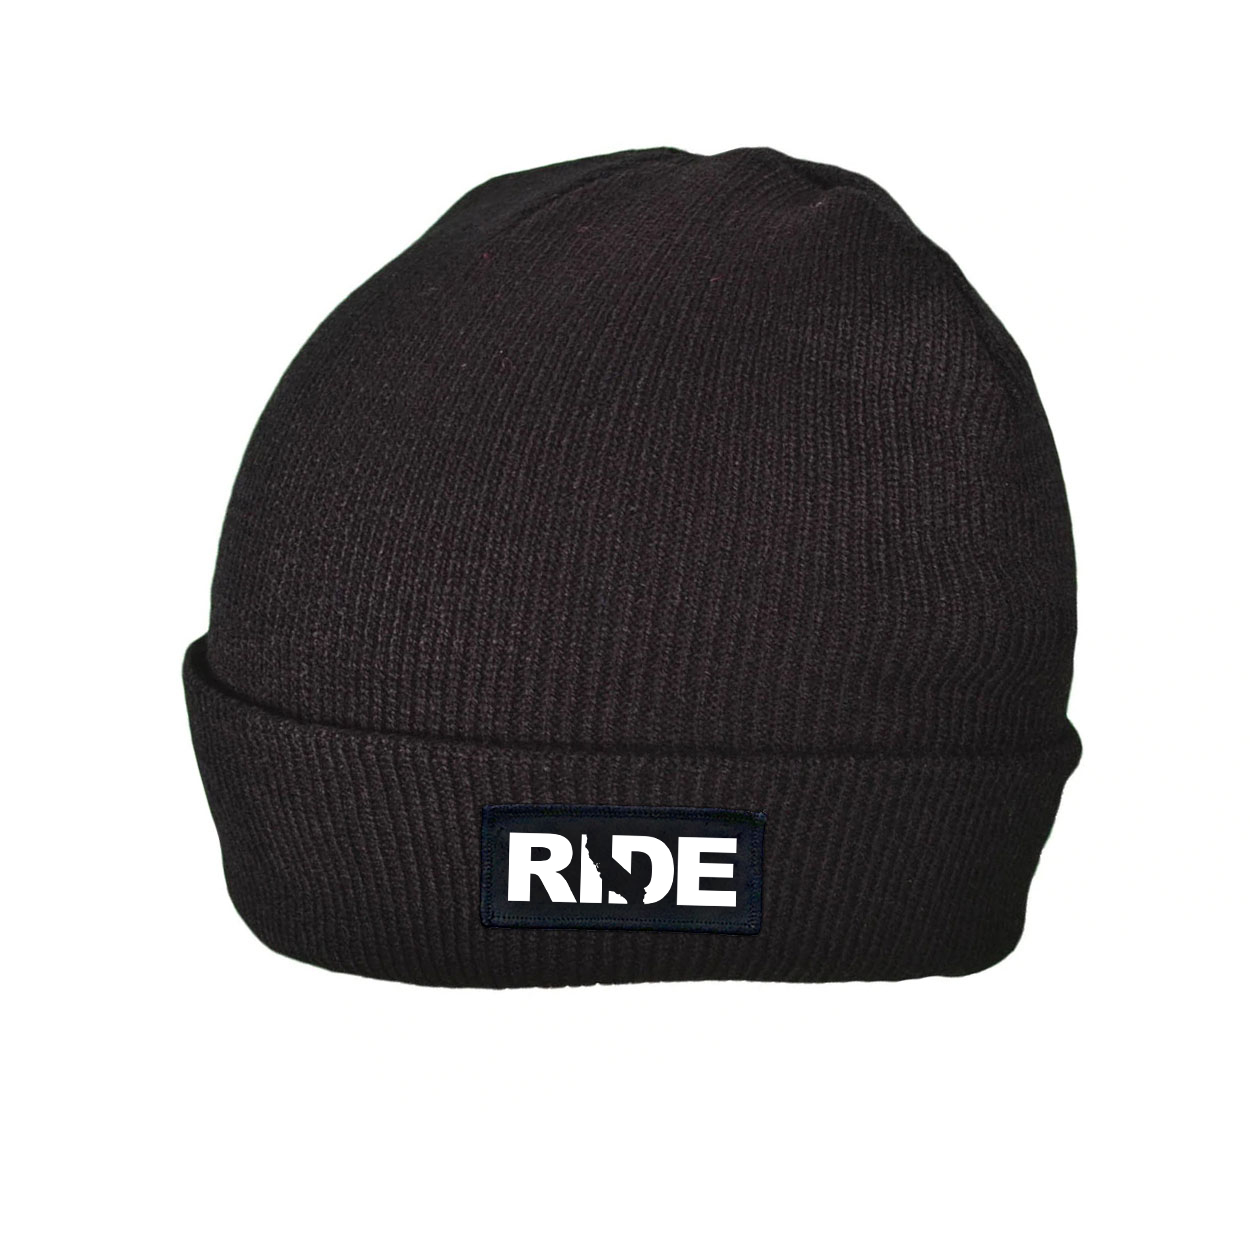 Ride California Night Out Woven Patch Roll Up Skully Beanie Black (White Logo)